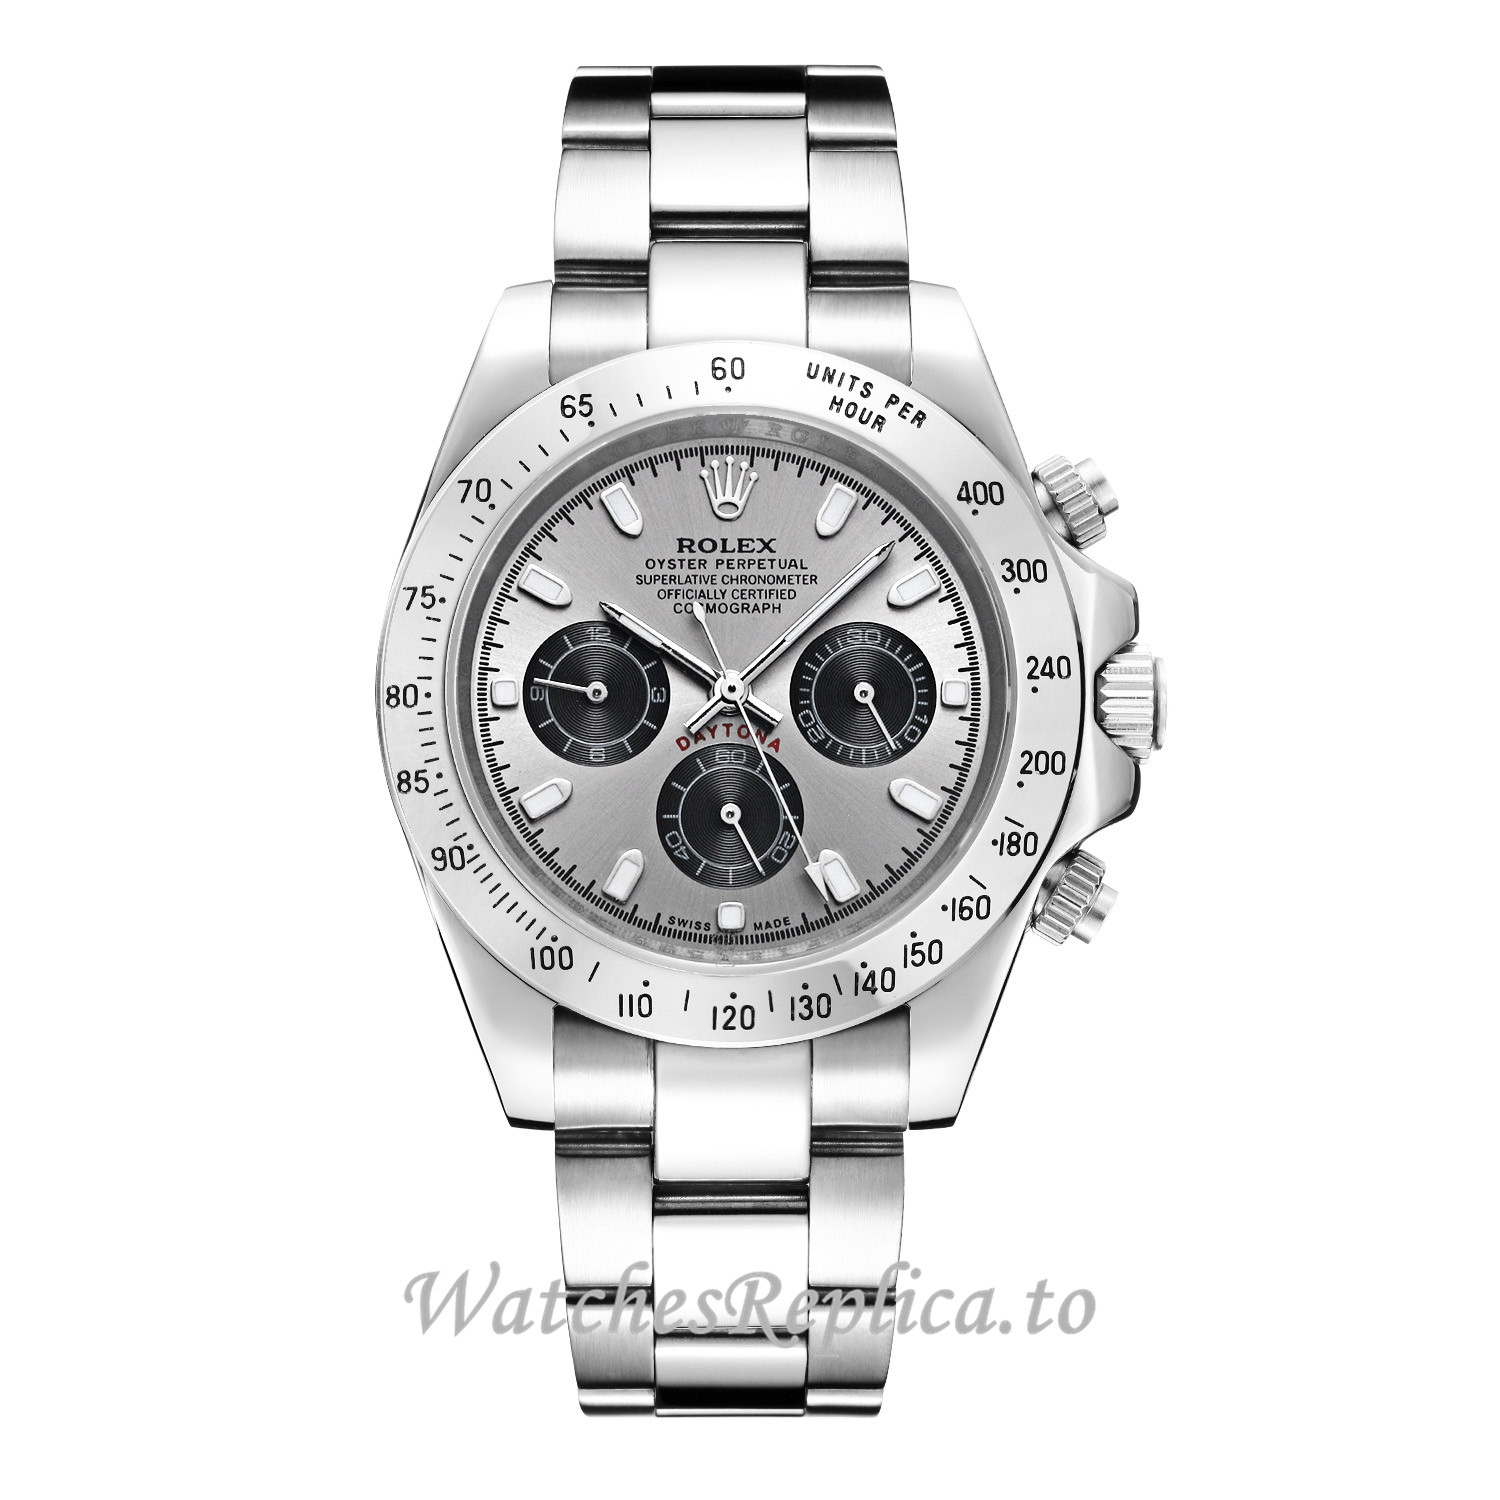 2018 rolex daytona gray dial 116509 40mm. Black Bedroom Furniture Sets. Home Design Ideas